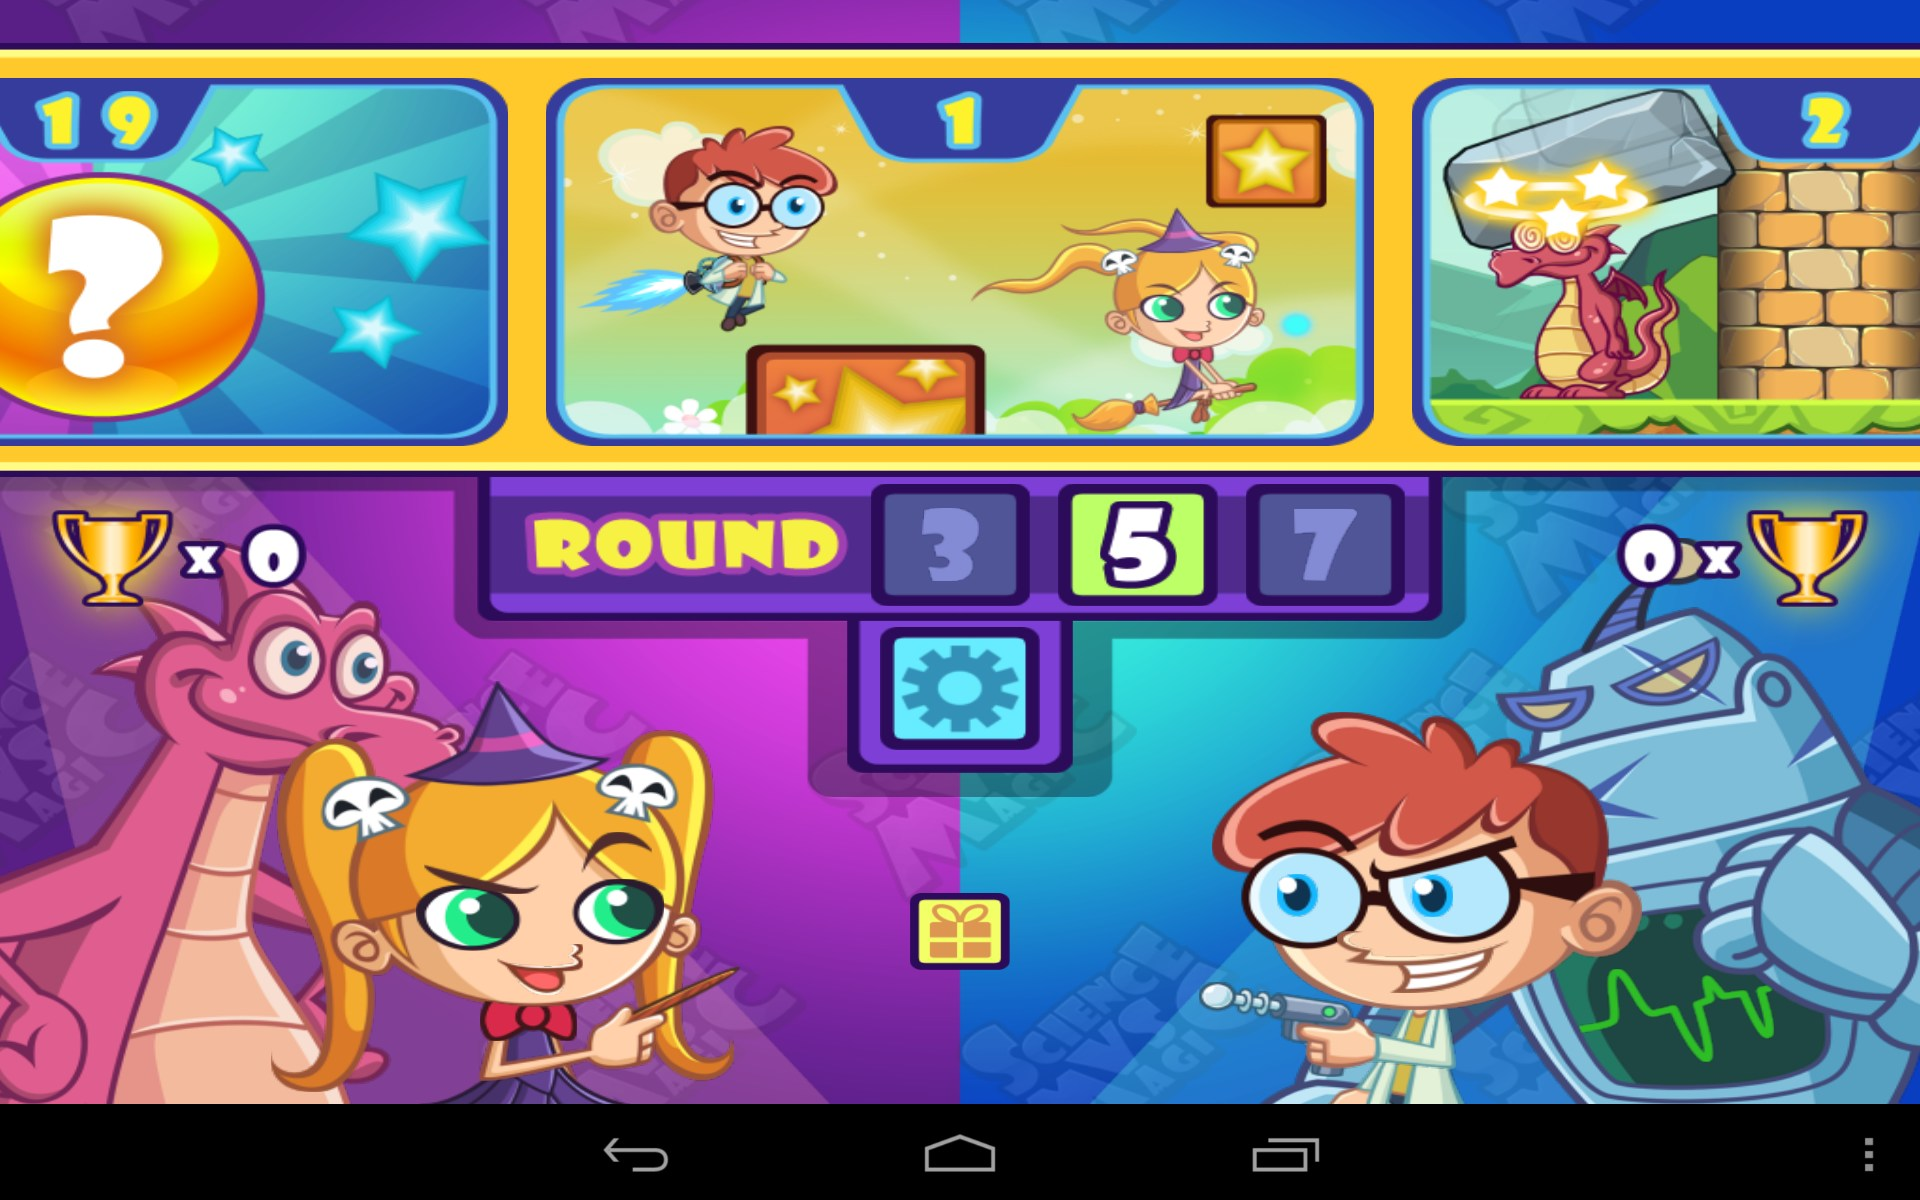 science magic game arcade simple games players screenshots 1544 app4smart discussions